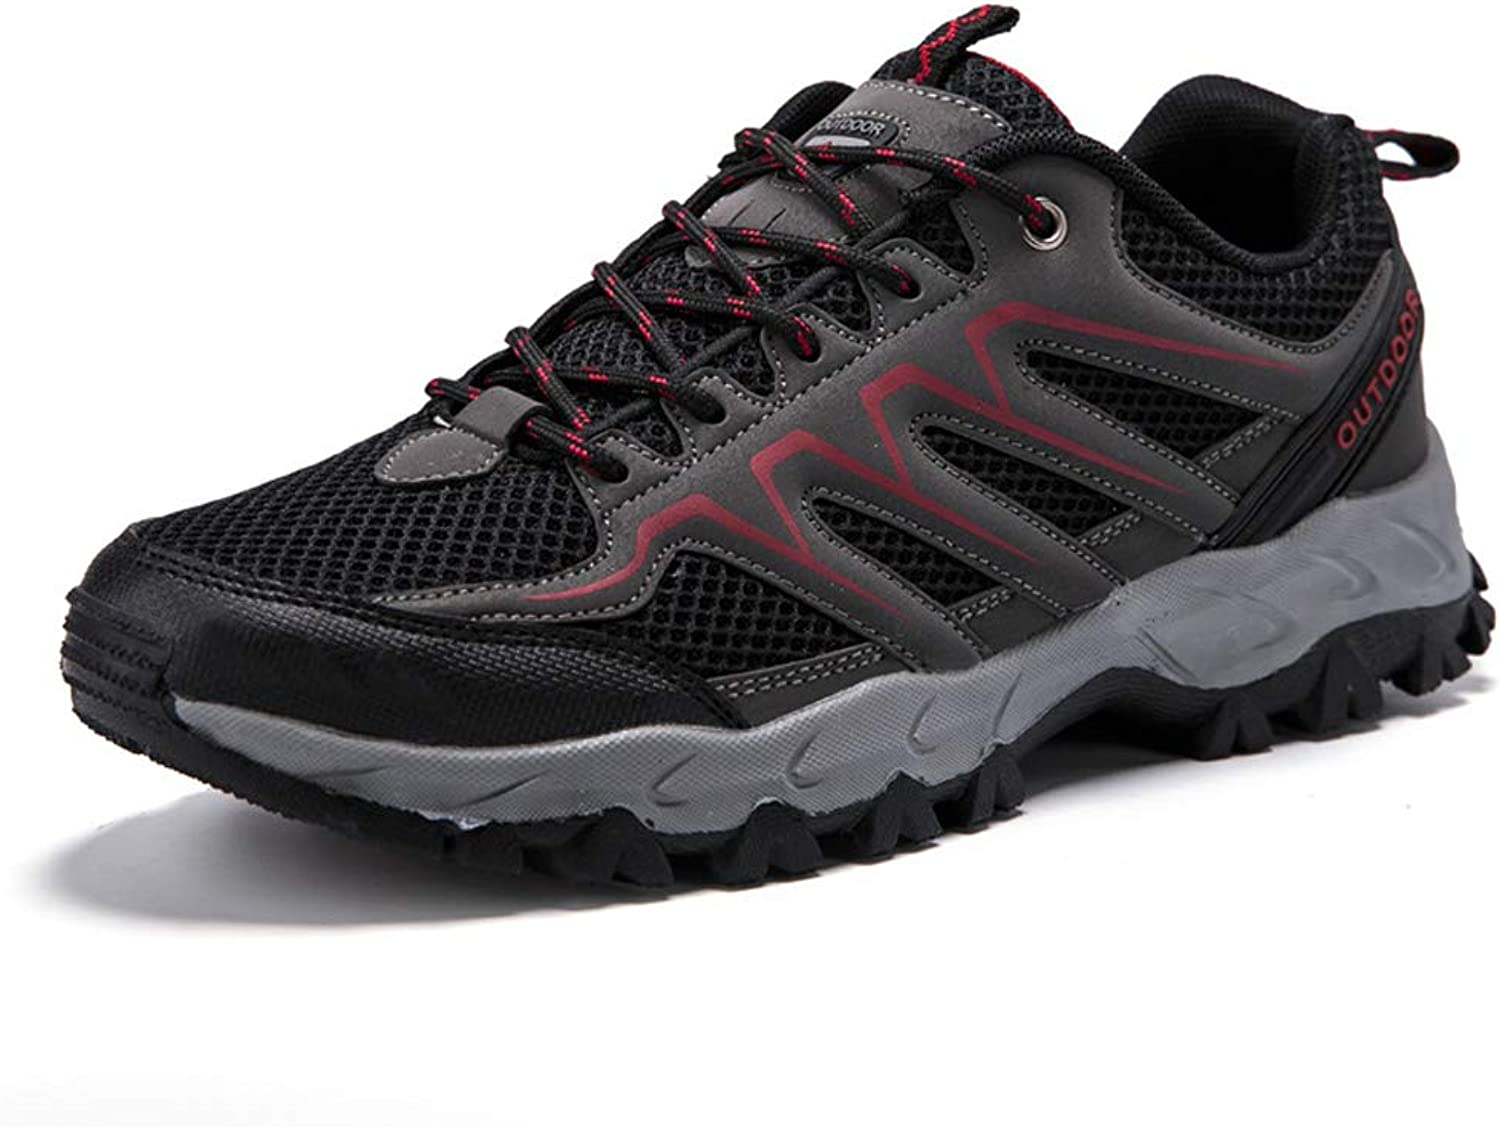 SELCNG Hiking shoes, Breathable mesh, Rubber Outsole, Hiking shoes, Walking shoes-black-43